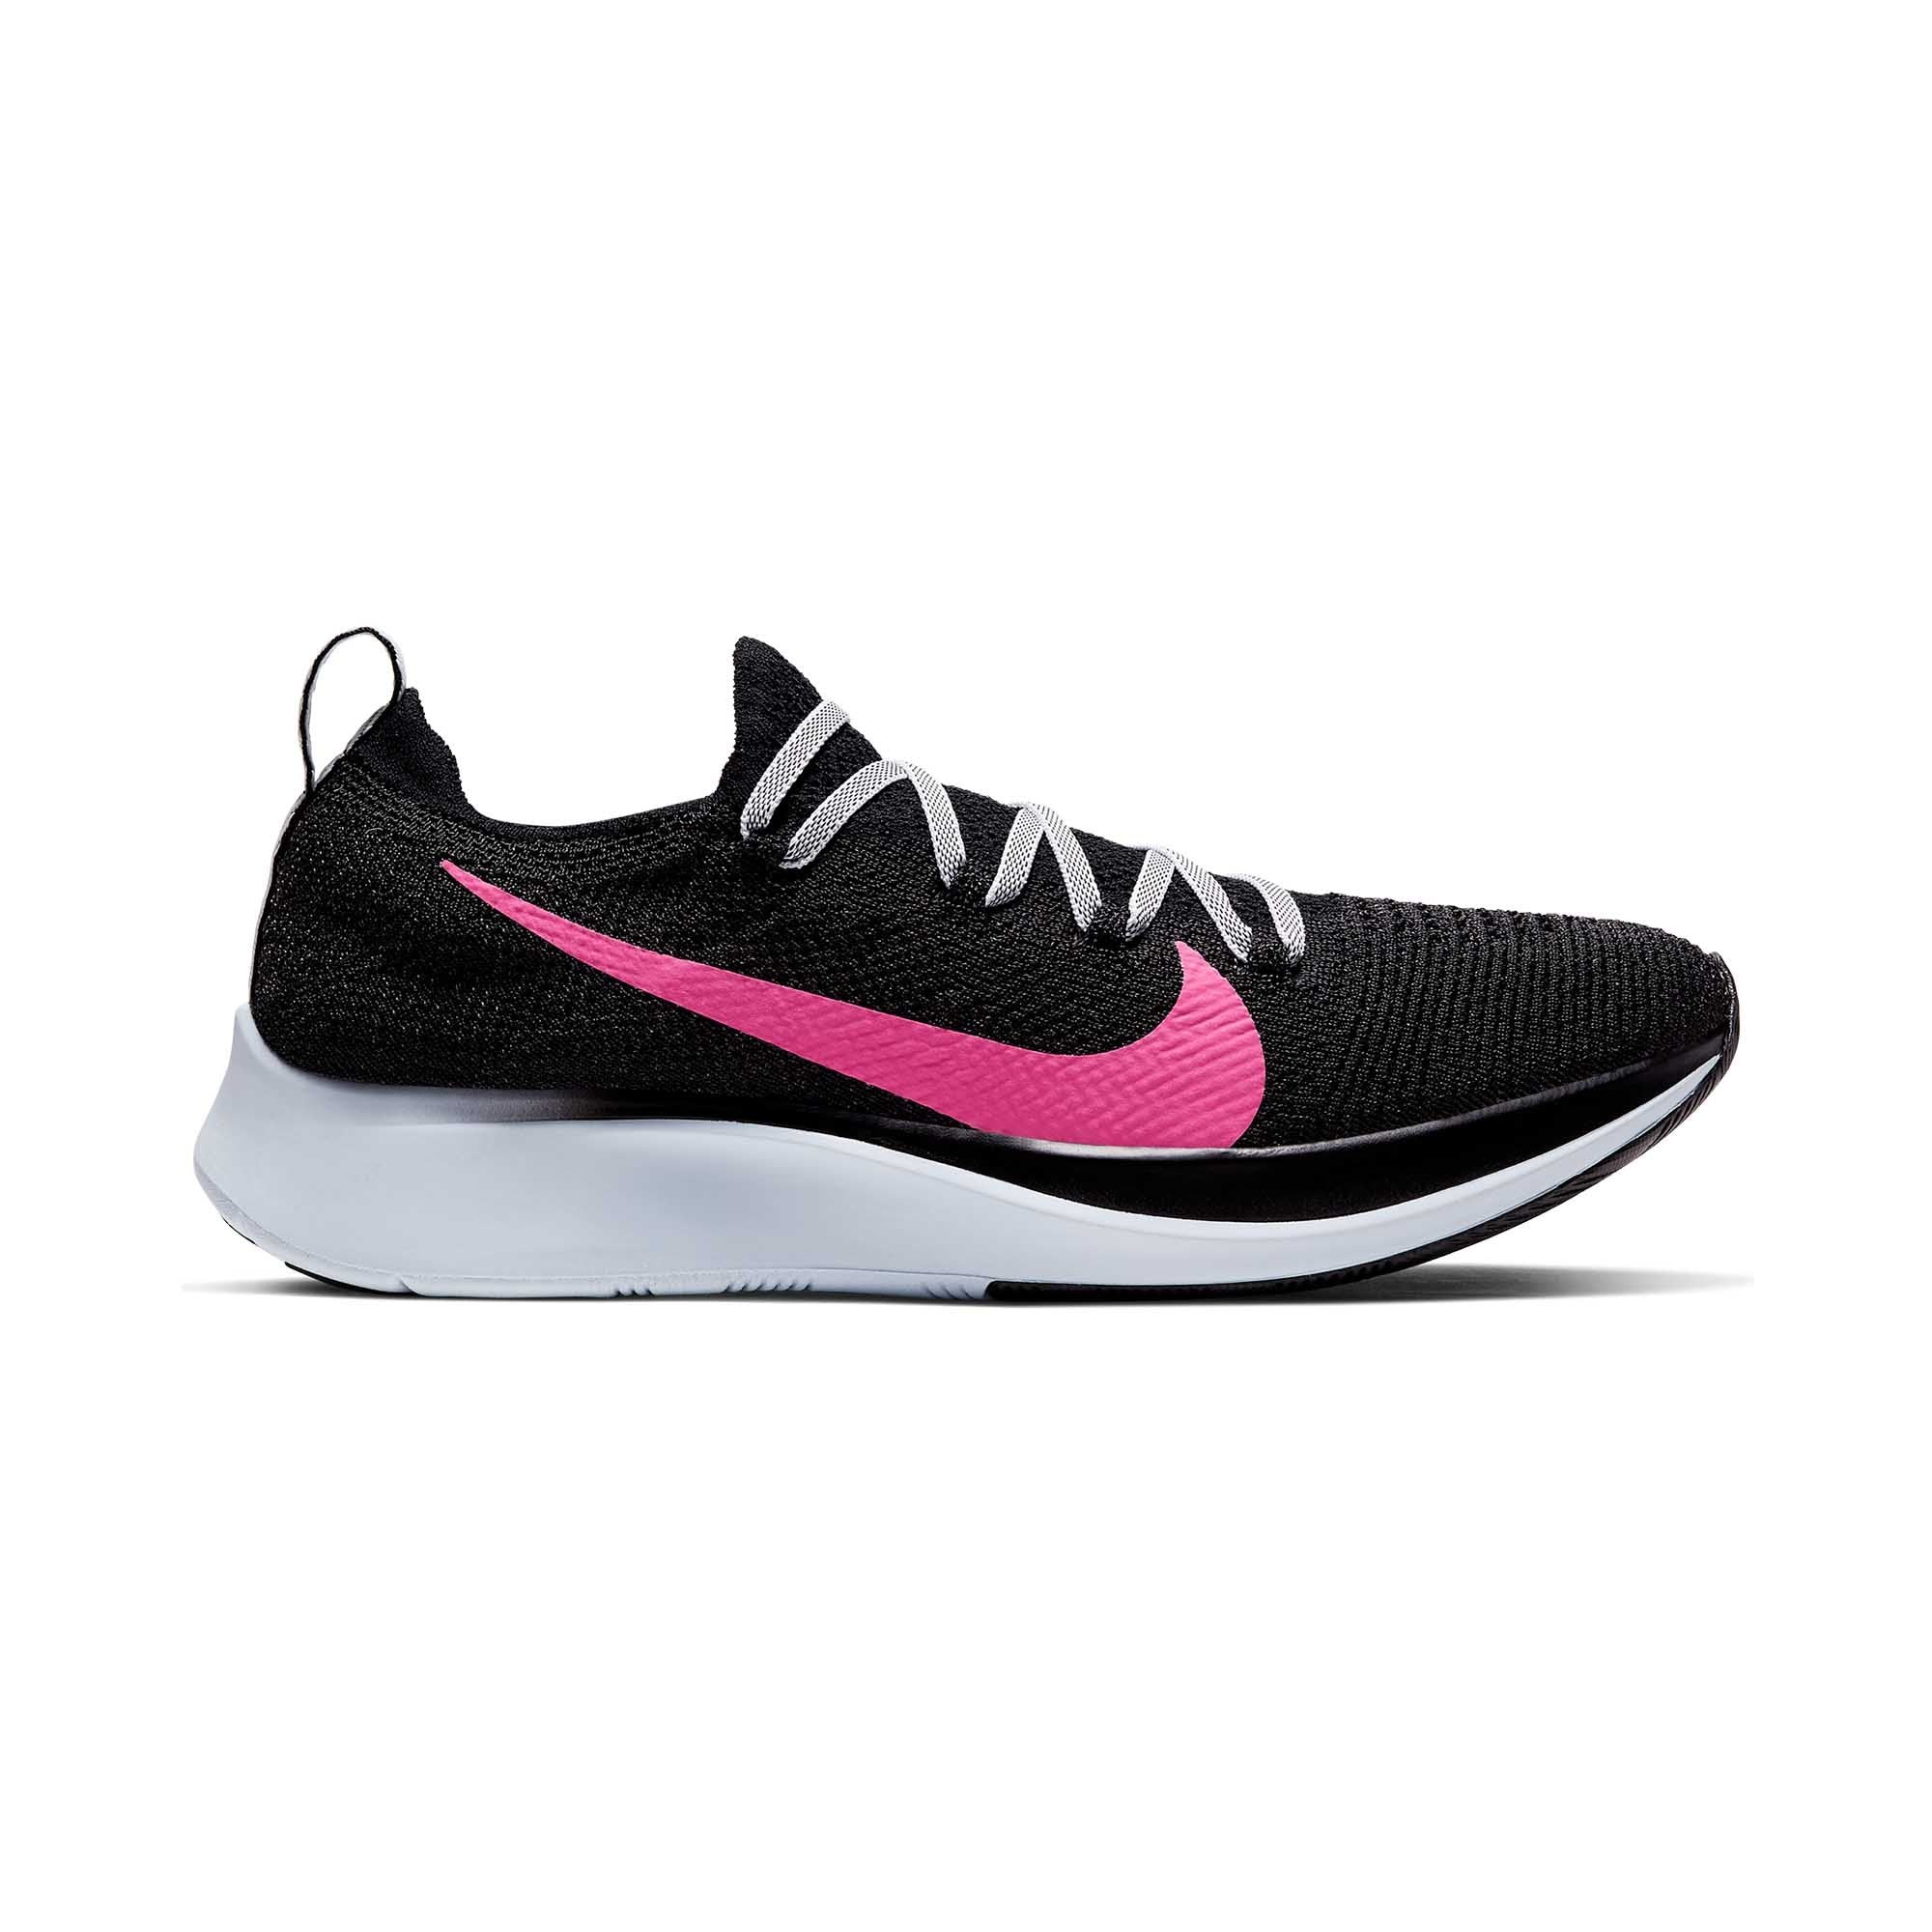 buy online 8d761 86496 Nike Shoes   Sportswear Online in Singapore   Royal Sporting House